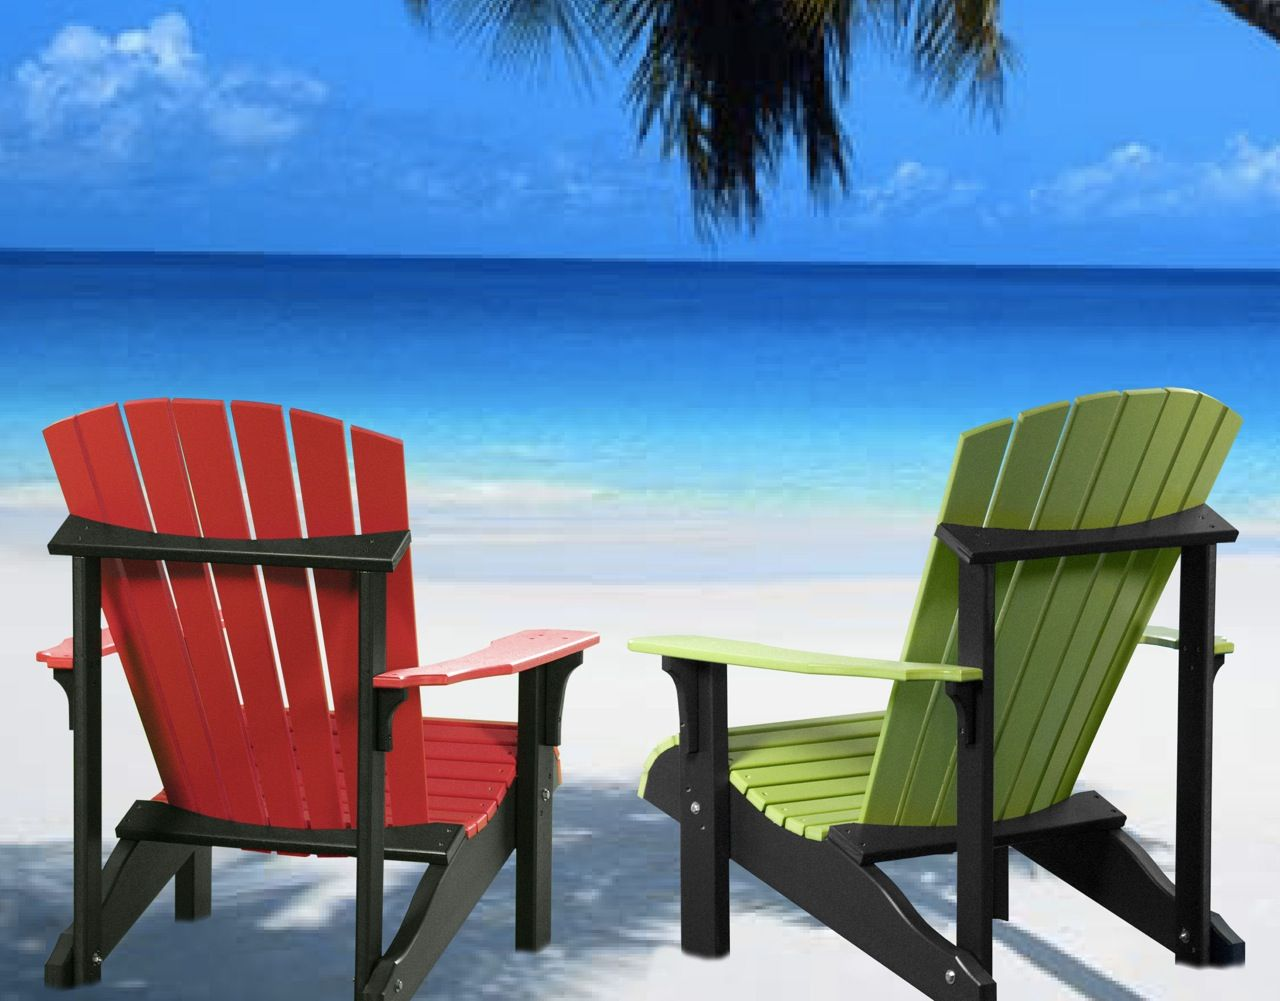 Deluxe adirondack chairs on beach